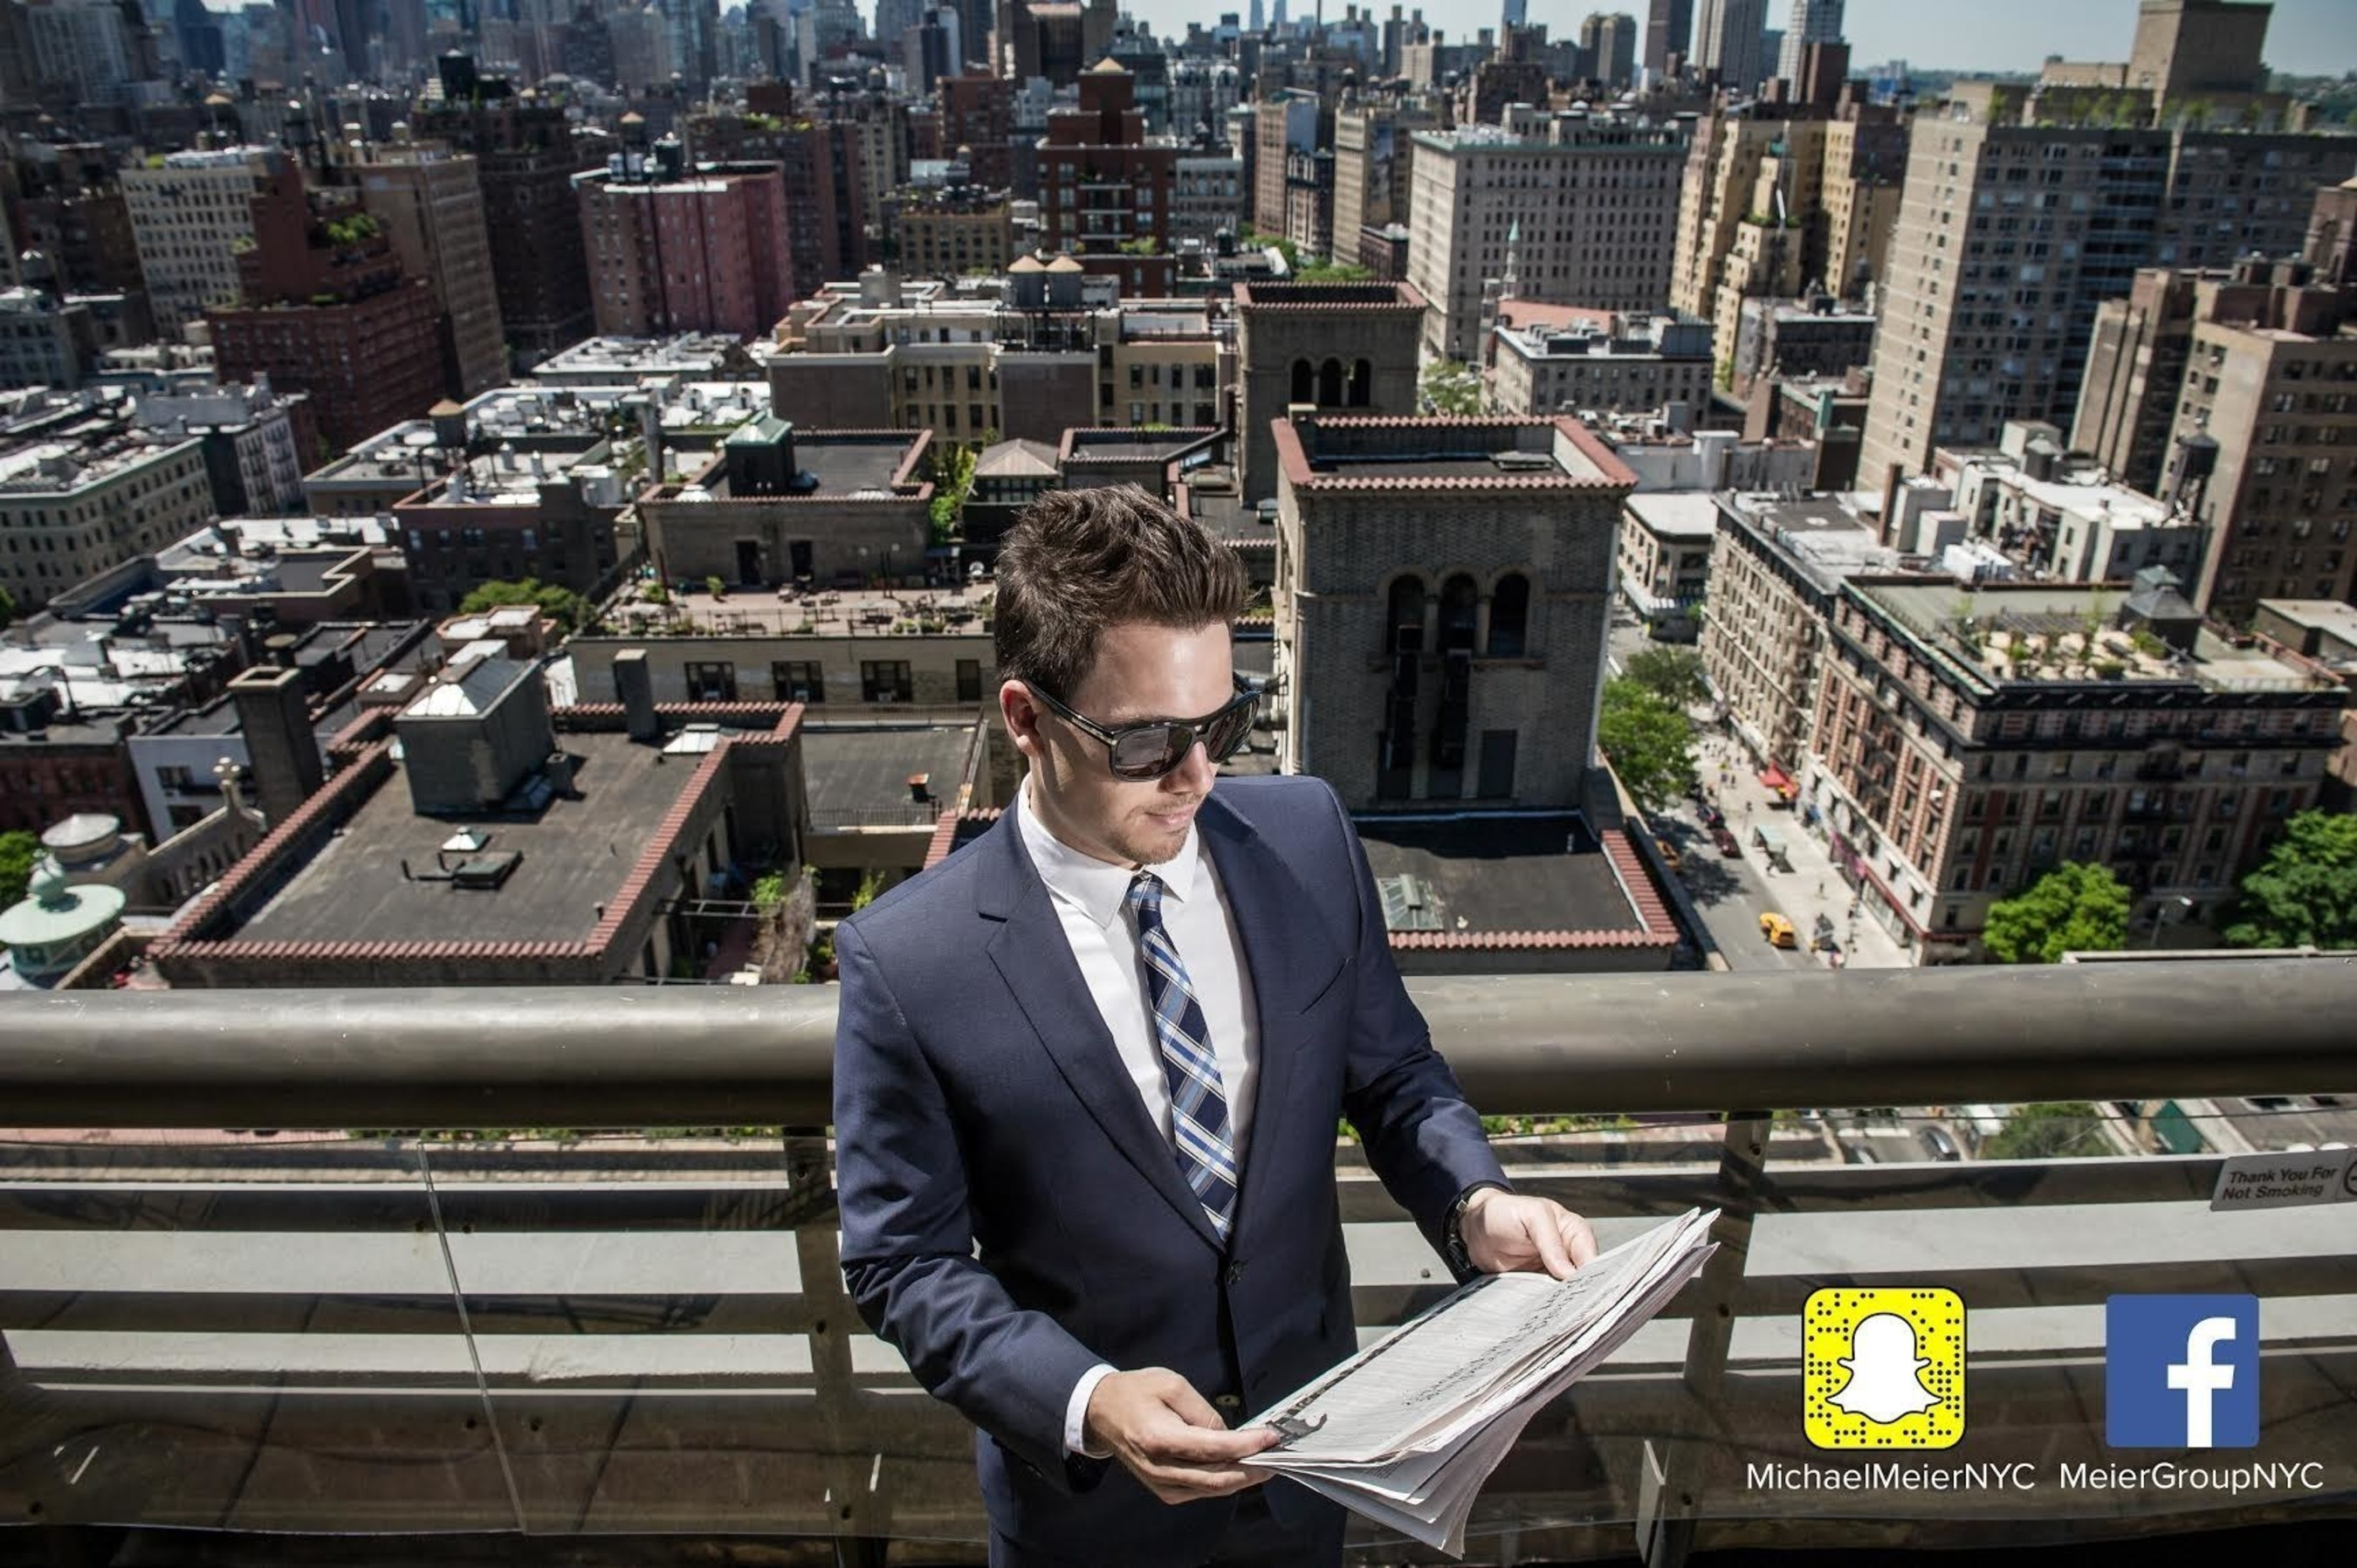 Manhattan Real Estate Expert Revolutionizes Snapchat And Facebook Live Video With New Agent Training Series